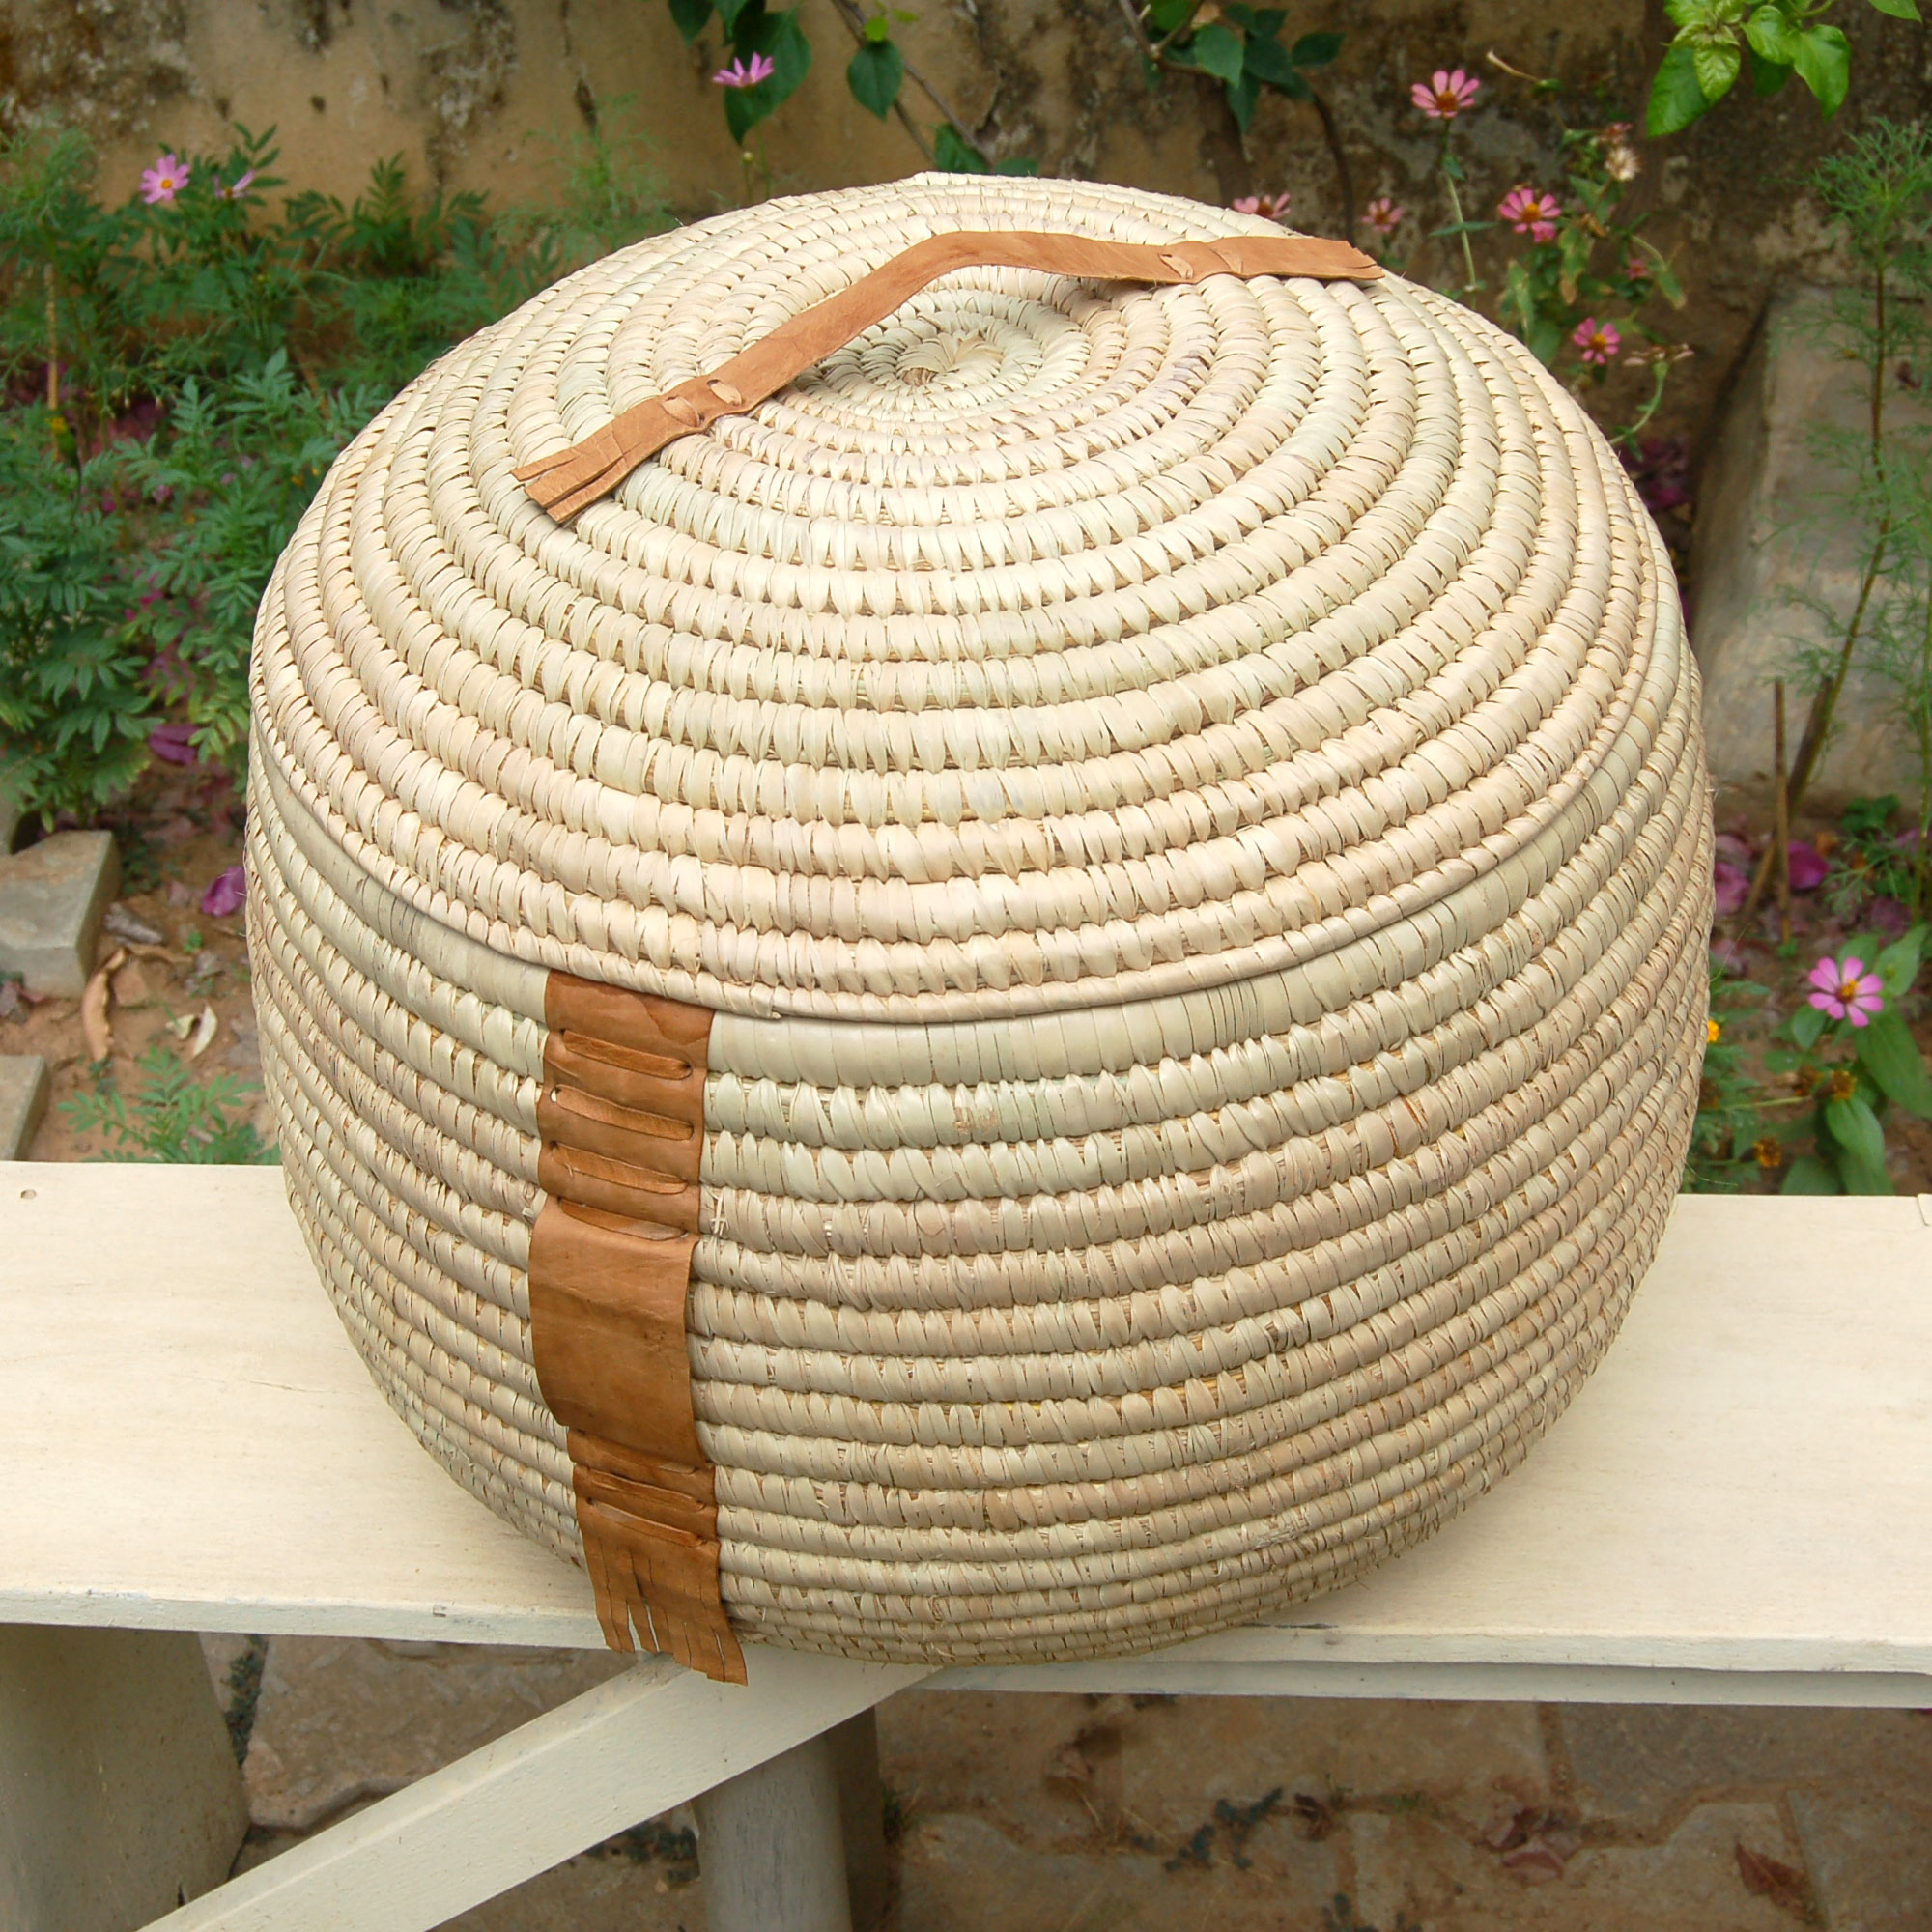 AfriMod Natural #2: SouthWest Flair – Large Lidded Storage Basket